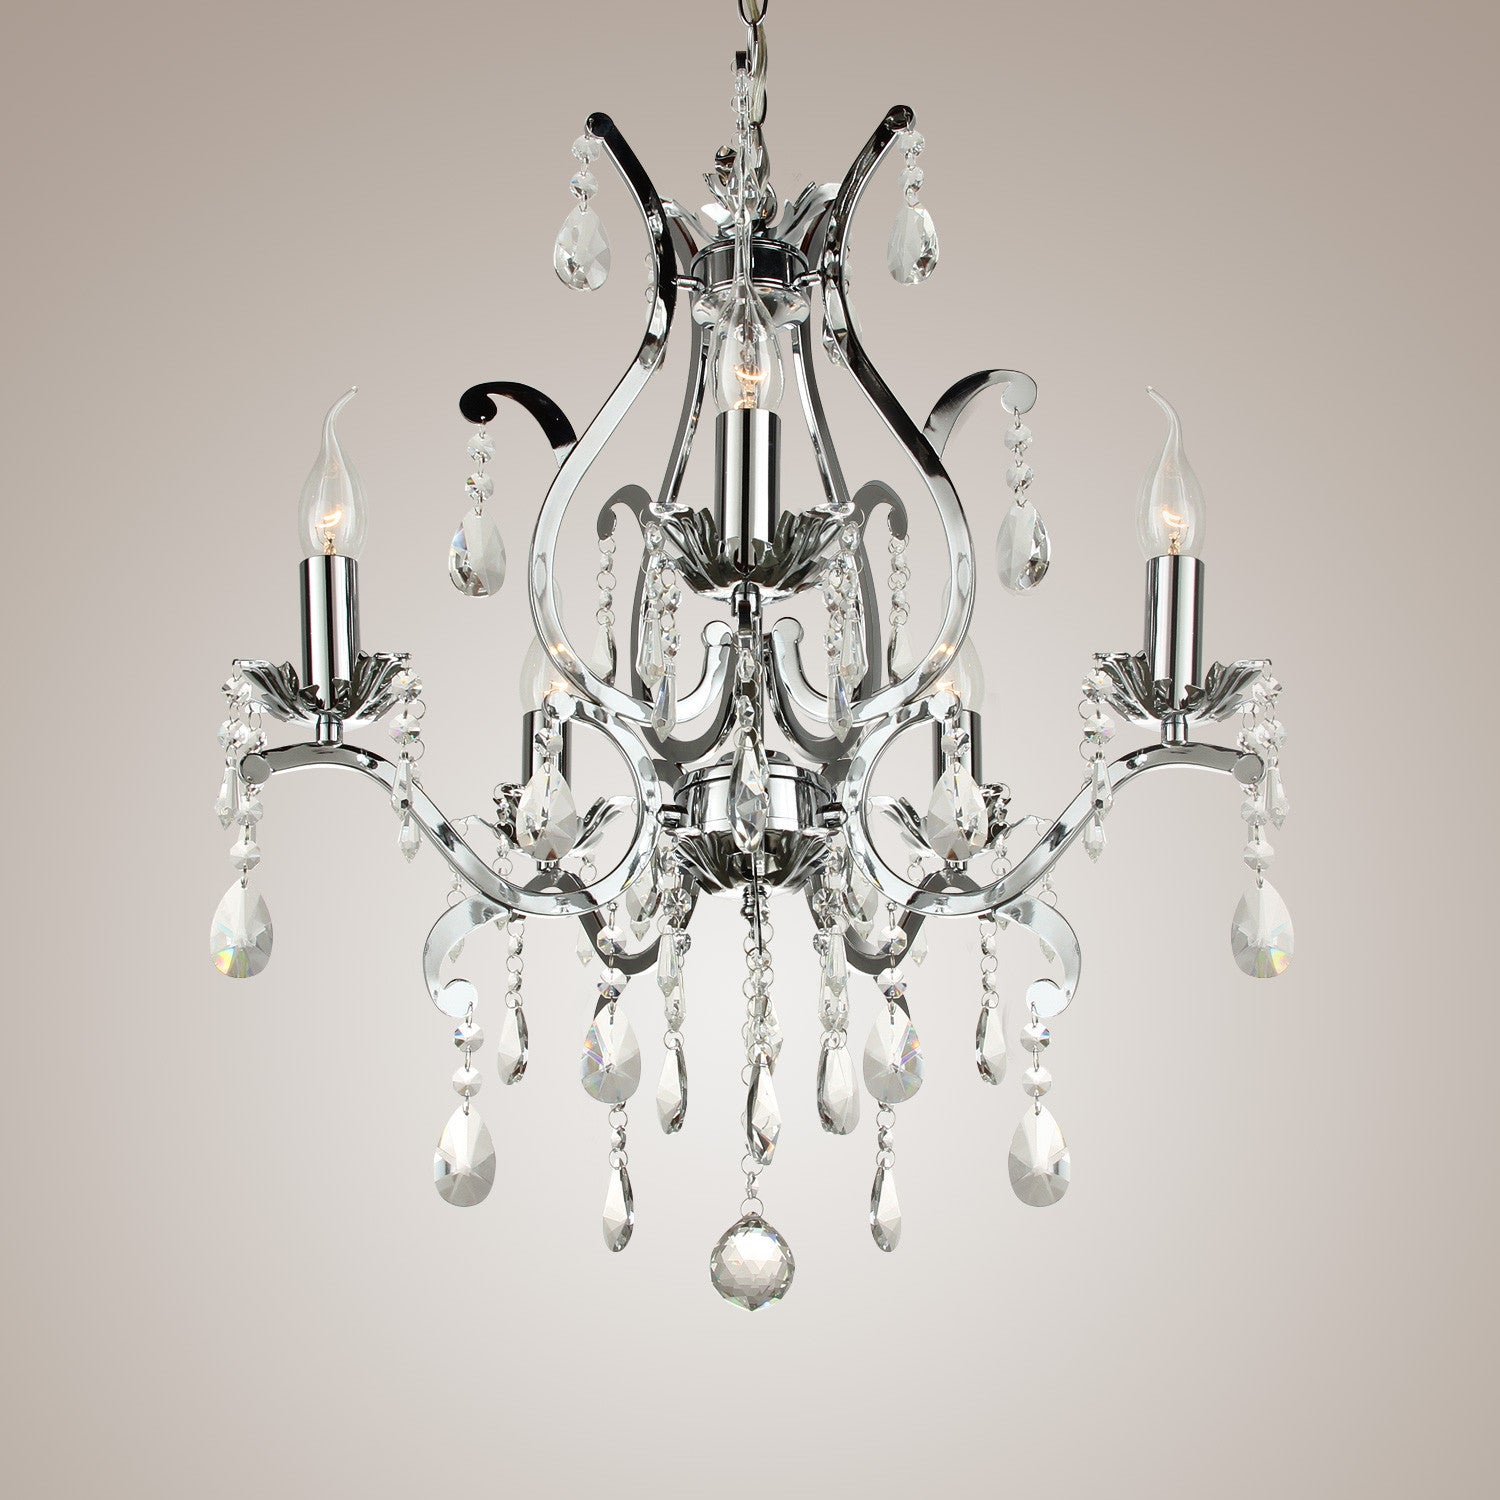 Crystal Wrought Iron Chandelier LED Lamp PL432